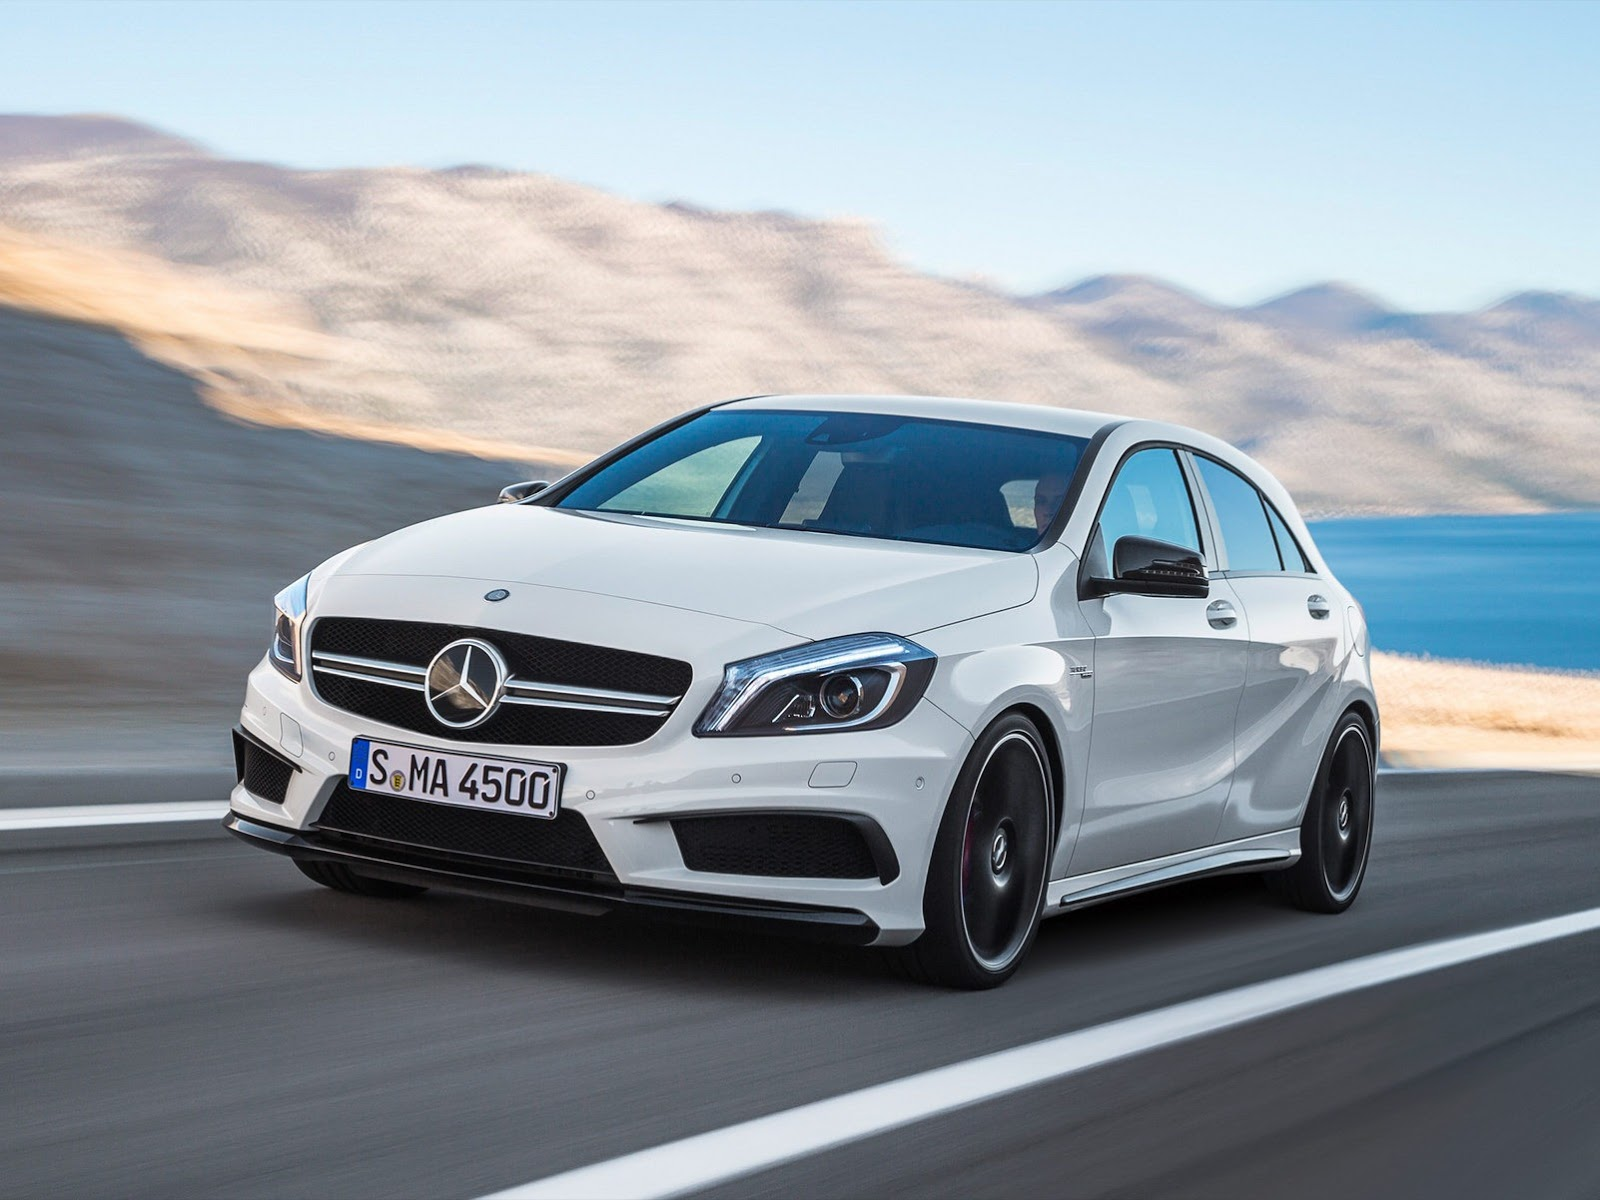 mercedes a45 amg revealed 360 hp awd 7 speed autoevolution. Black Bedroom Furniture Sets. Home Design Ideas